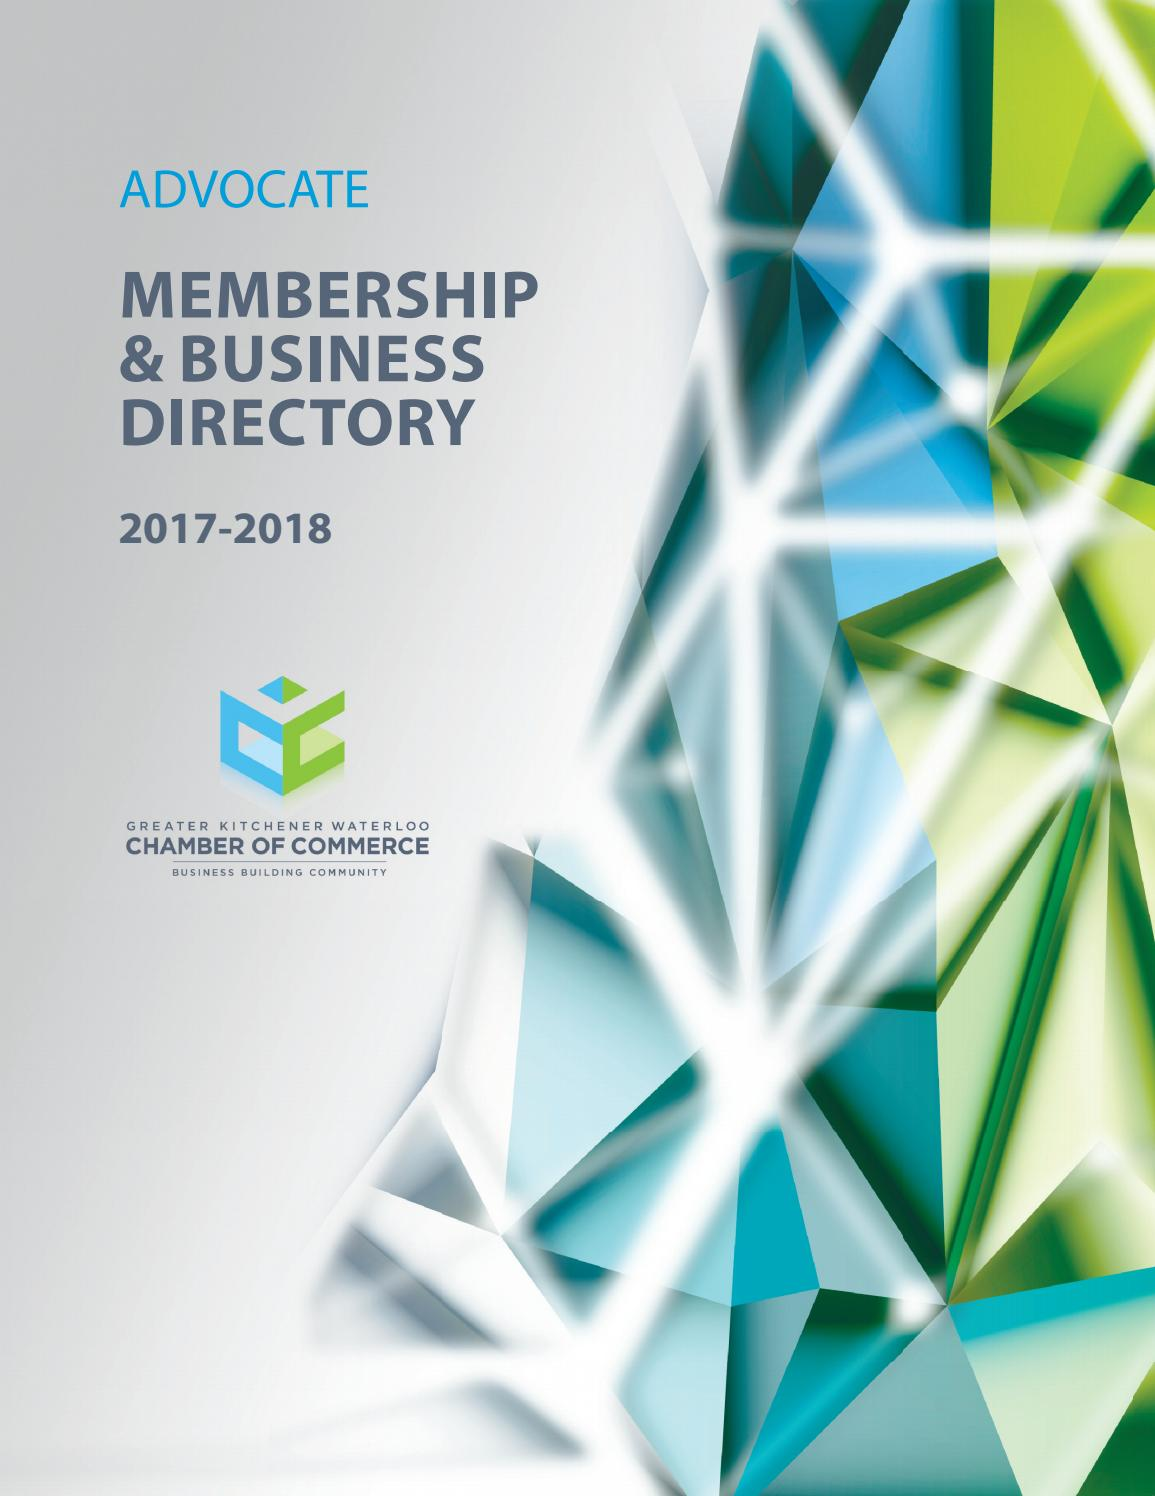 Membership & Business Directory 2017-2018 by Natalie Hemmerich - issuu